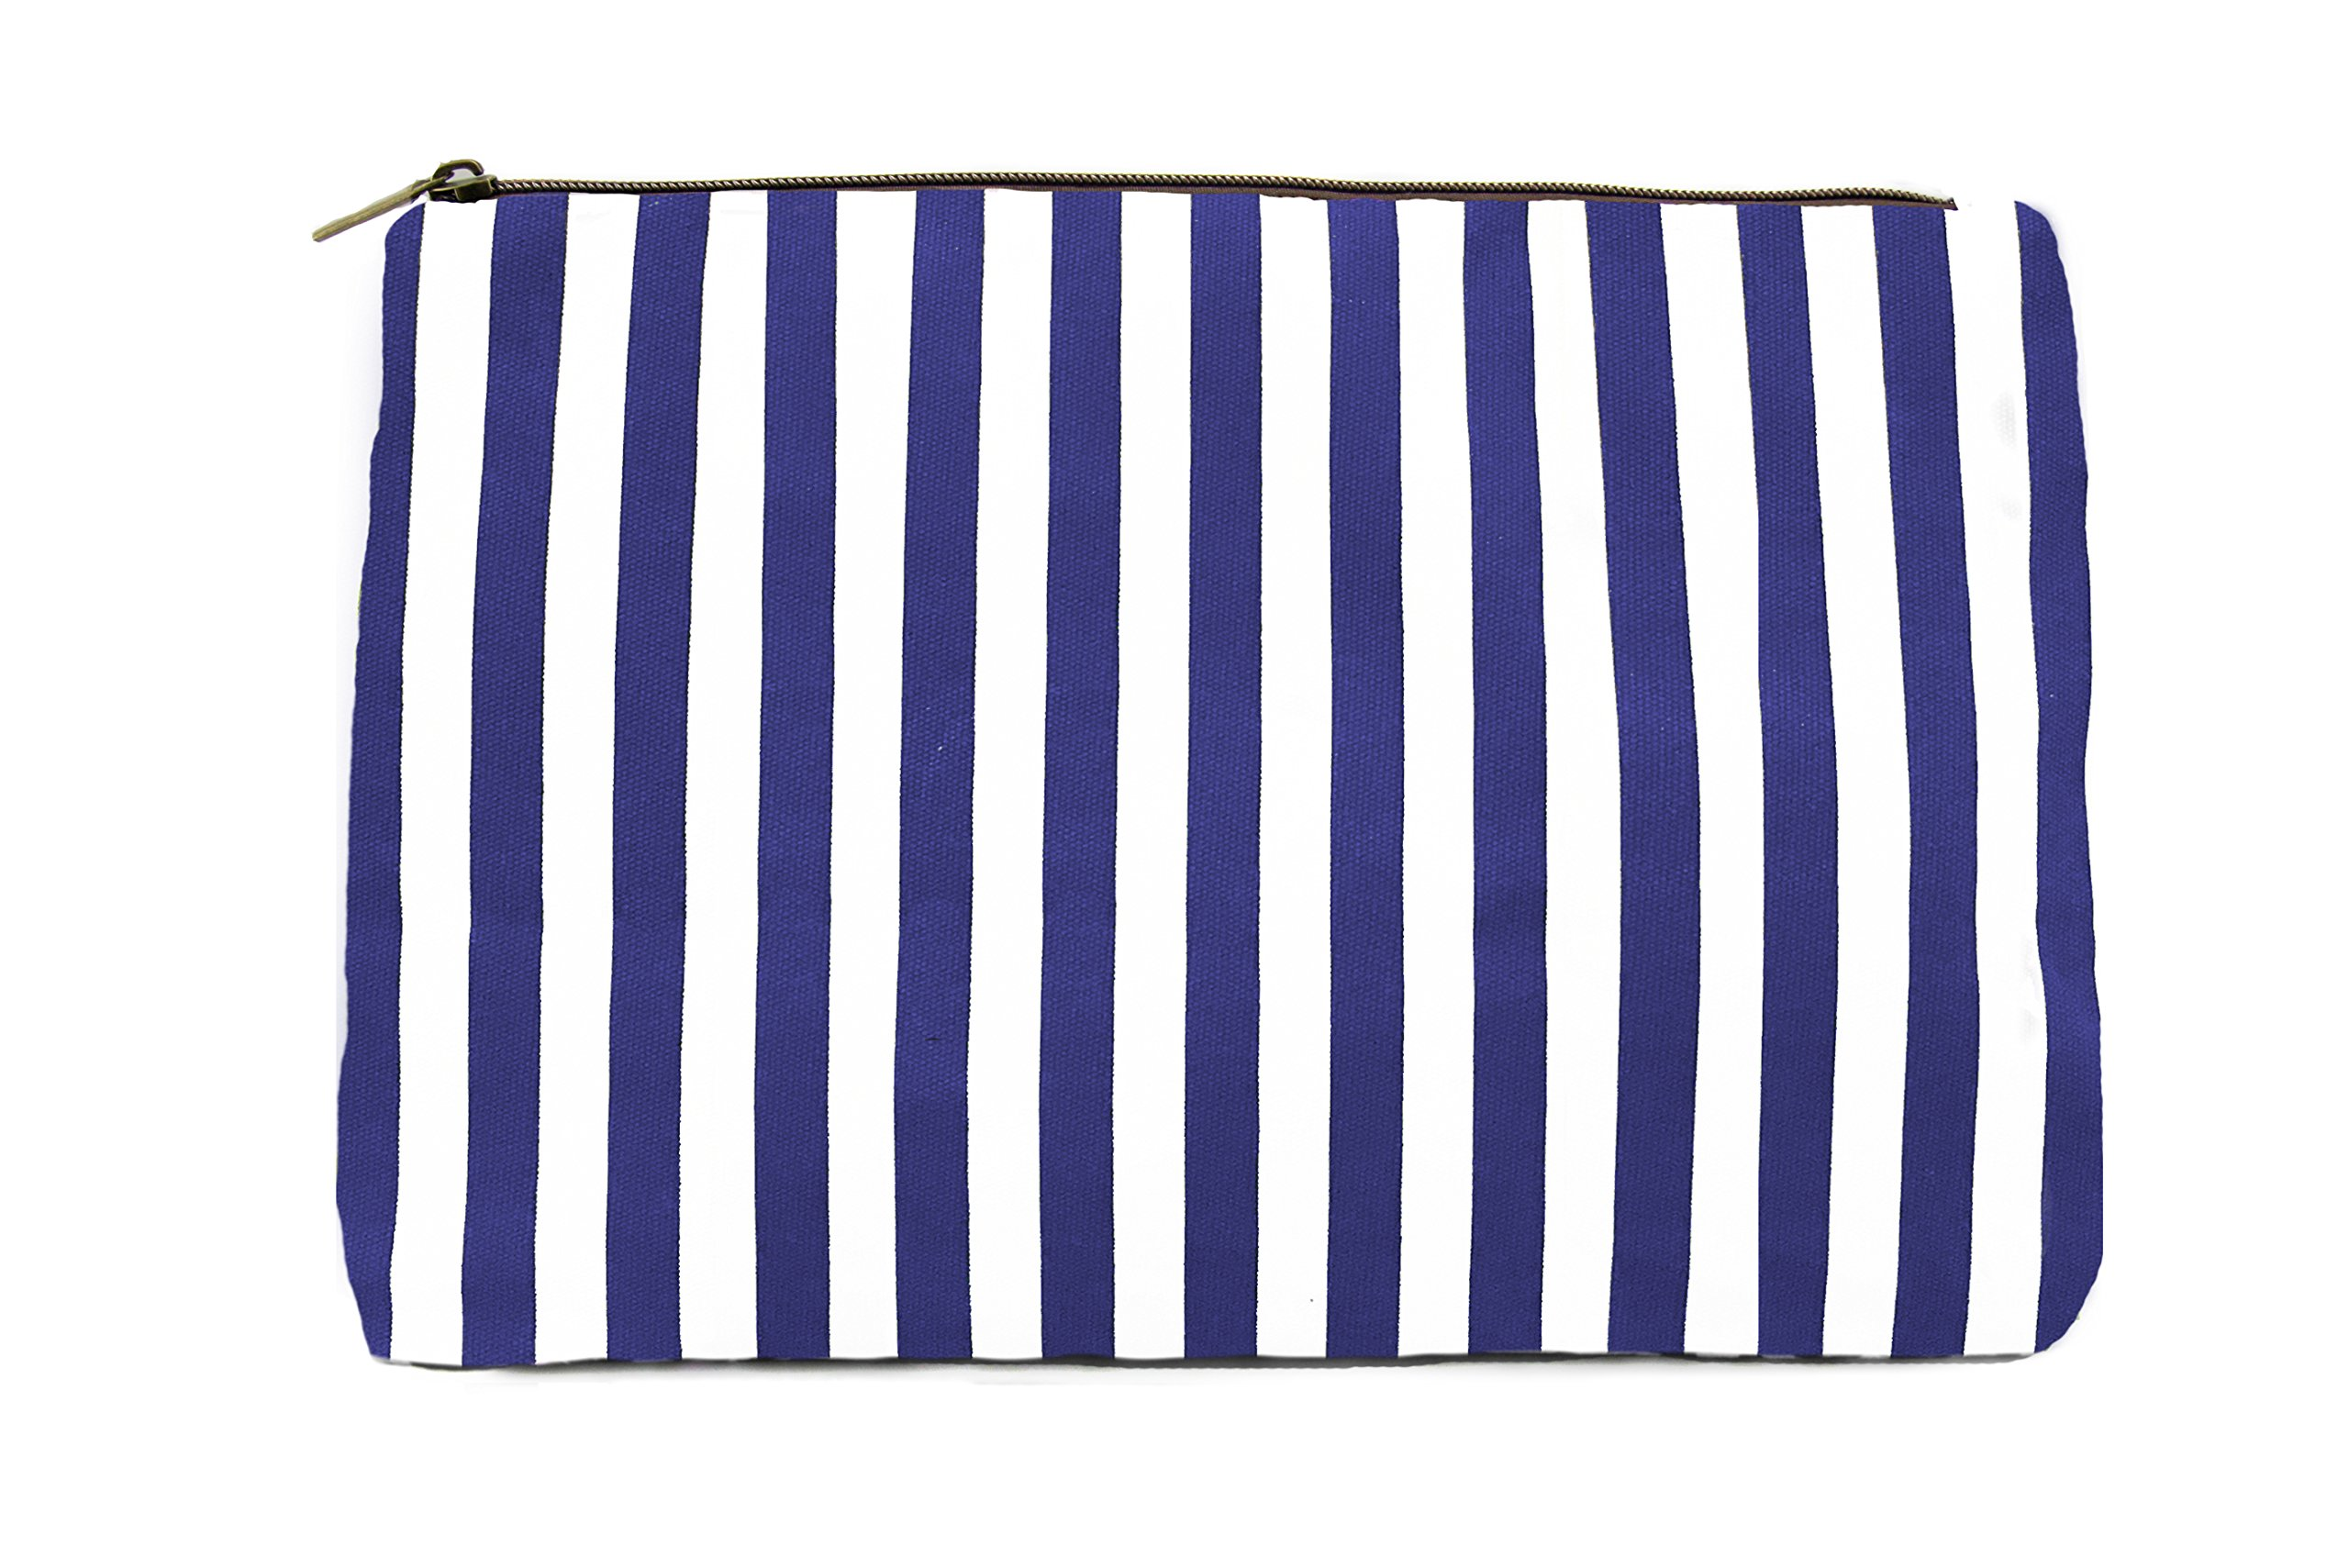 Blue Makeup Bag, Lulu Dharma Womens Striped Cosmetic Bag, Makeup Bag, Toiletry Bag, Organizer Bag, Small Travel Bag, Cosmetic Case, Makeup Pouch, Wallet, Jewelry Travel Bag (Blue) - MSRP $38